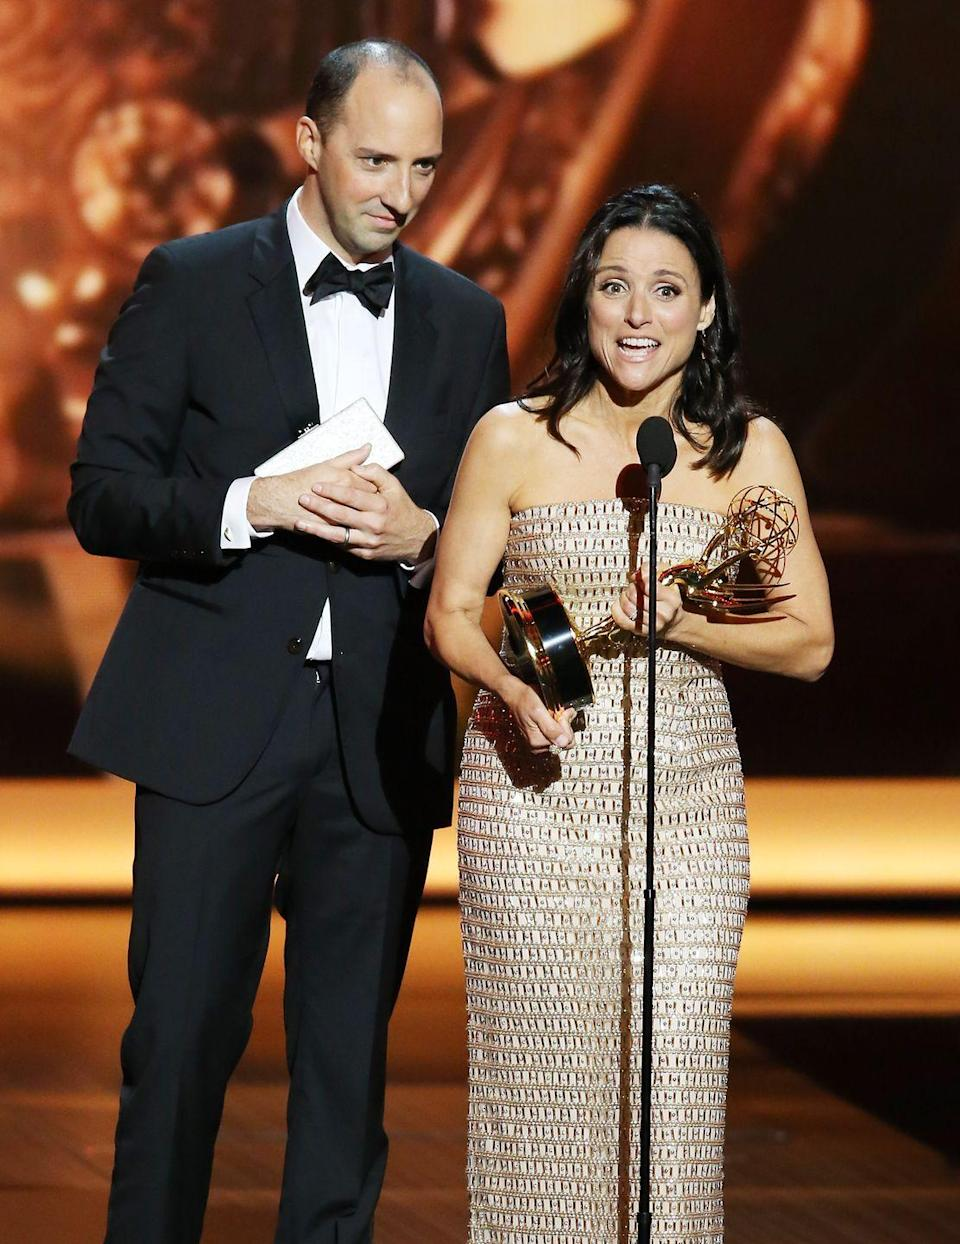 <p>When Julia Louis-Dreyfus won Best Actress in a Comedy for her role in <em>Veep</em>, she walked up to the stage with Tony Hale behind her for a <em>Veep</em> bit that every fan appreciated. Hale stood behind Louis-Dreyfus to remind her to thank her family—and when she didn't thank him as part of the cast, it was the perfect touch. </p>